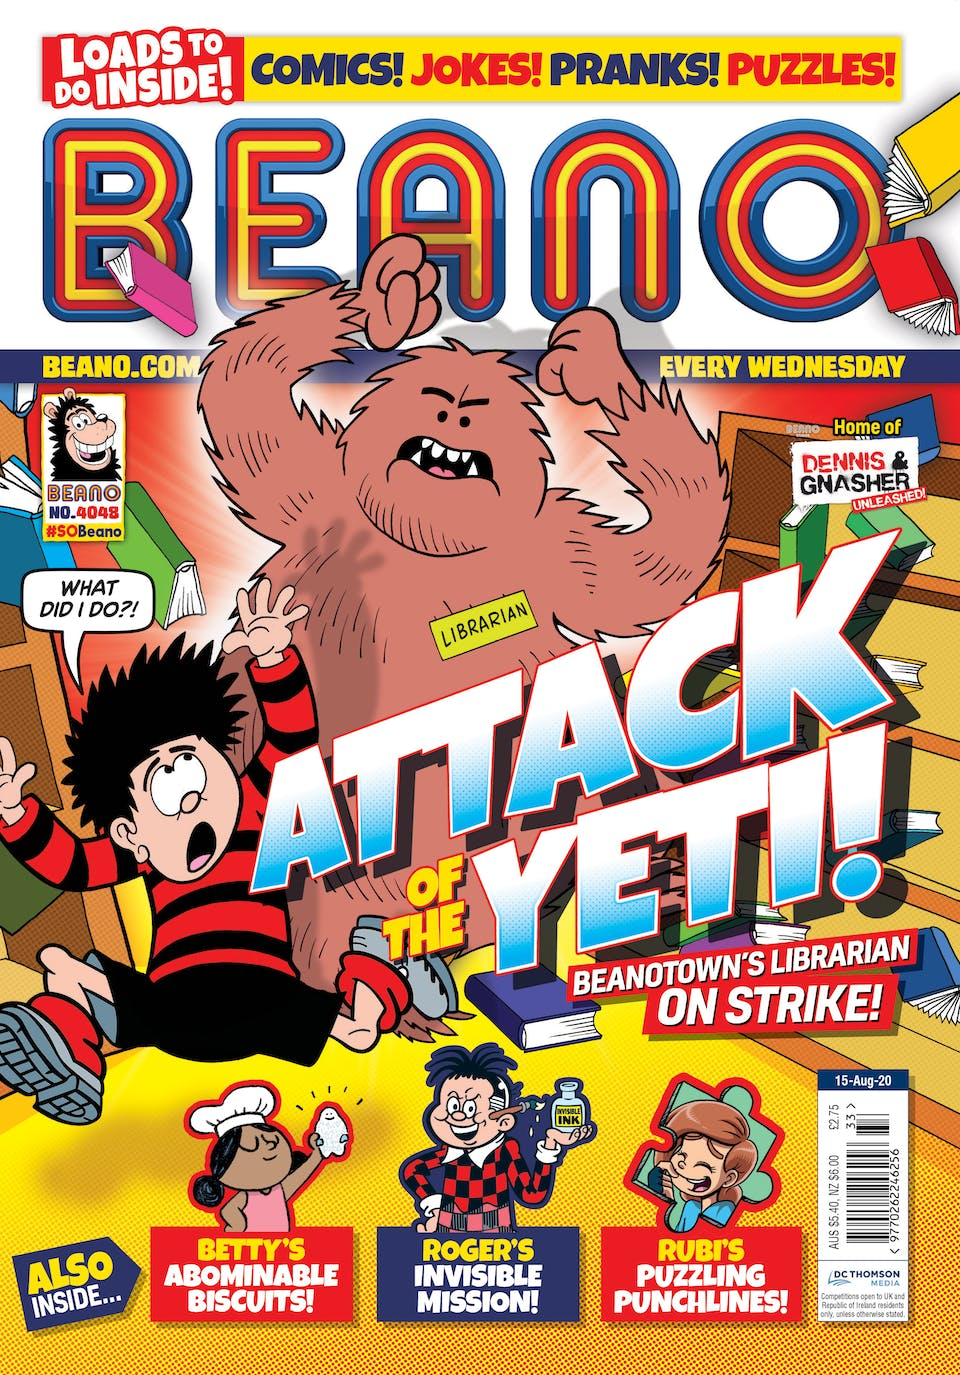 Inside Beano no. 4048 - Attack of the Yeti!